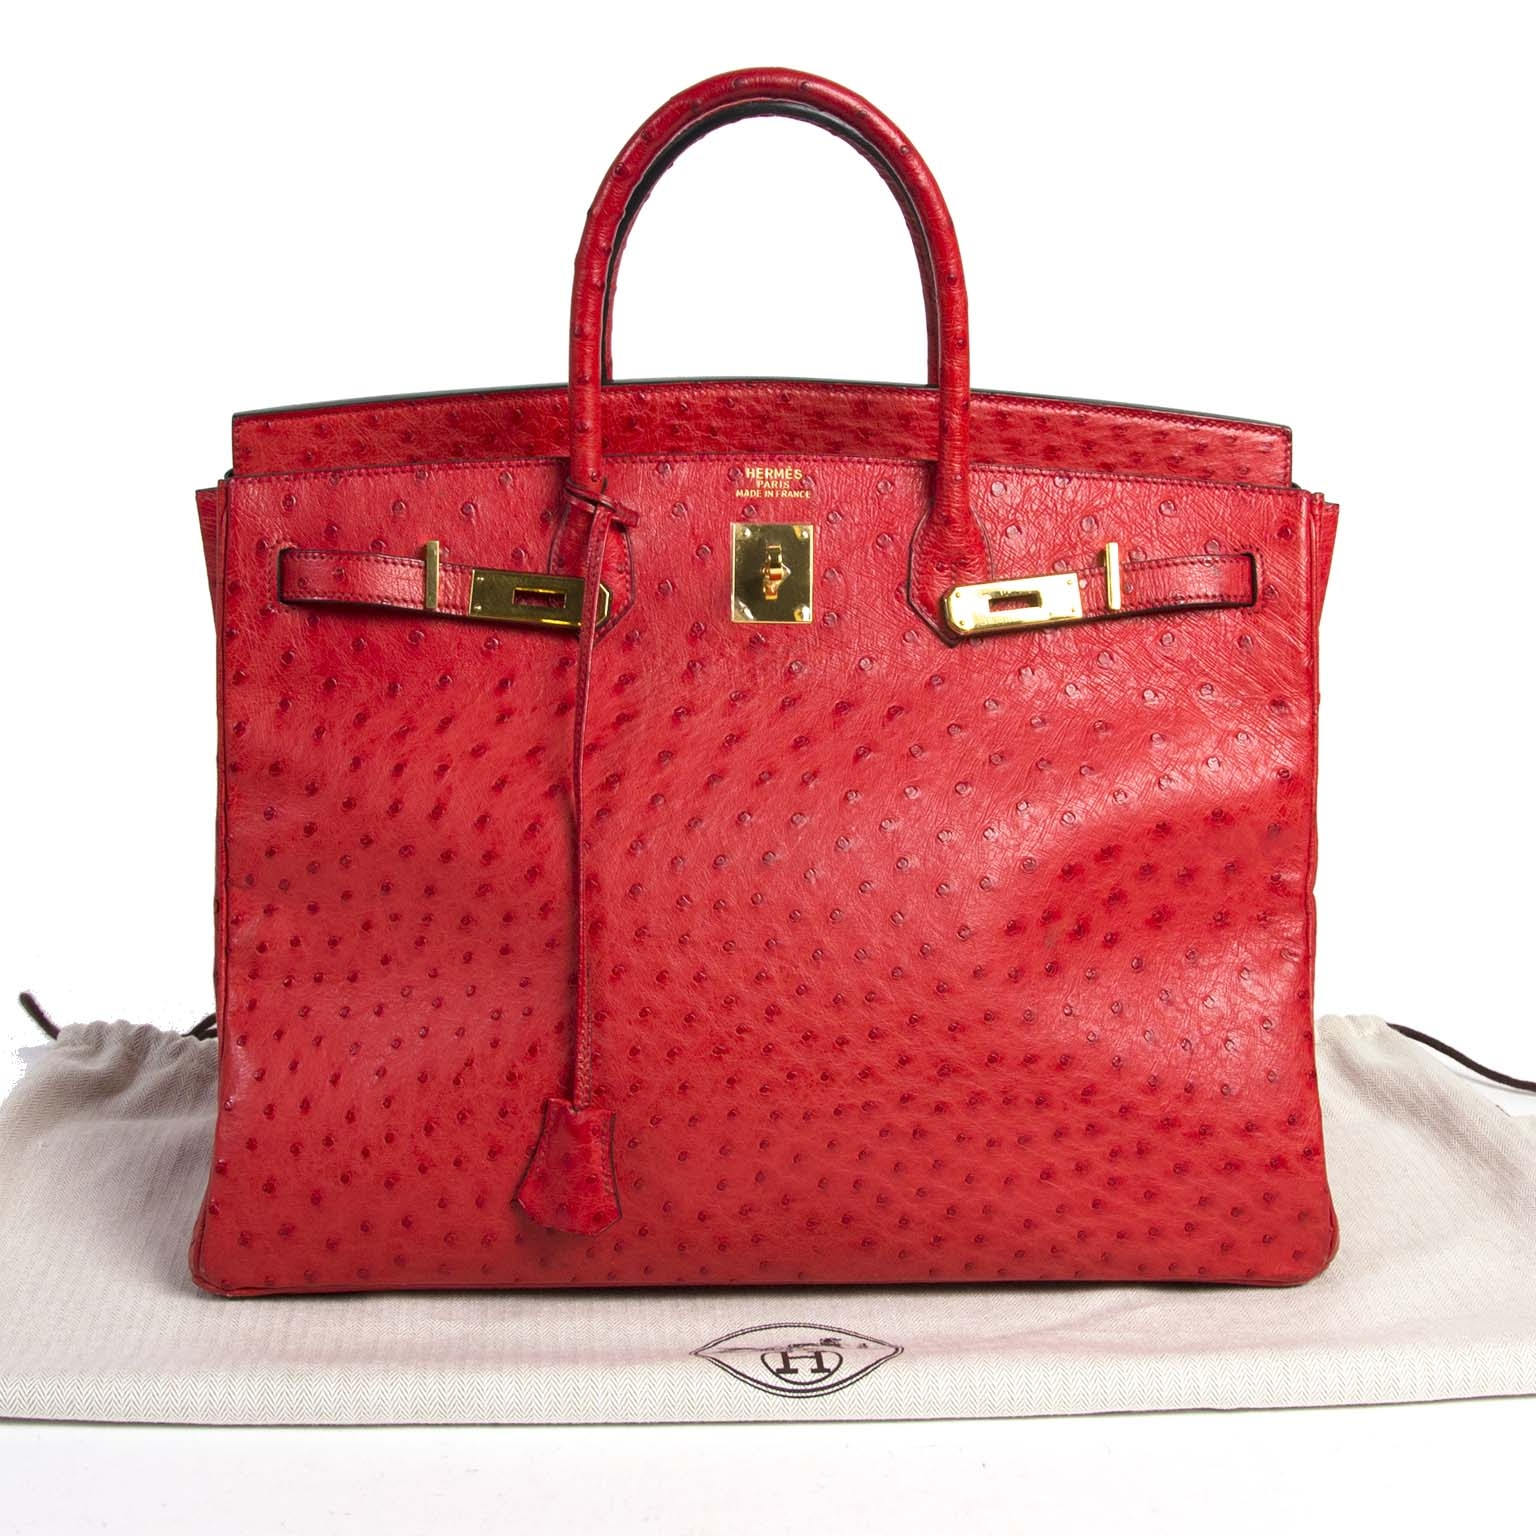 47012e846812 ... skip the waitinglist and get your Hermes Birkin 40 Ostrich  Bougainvillea right now